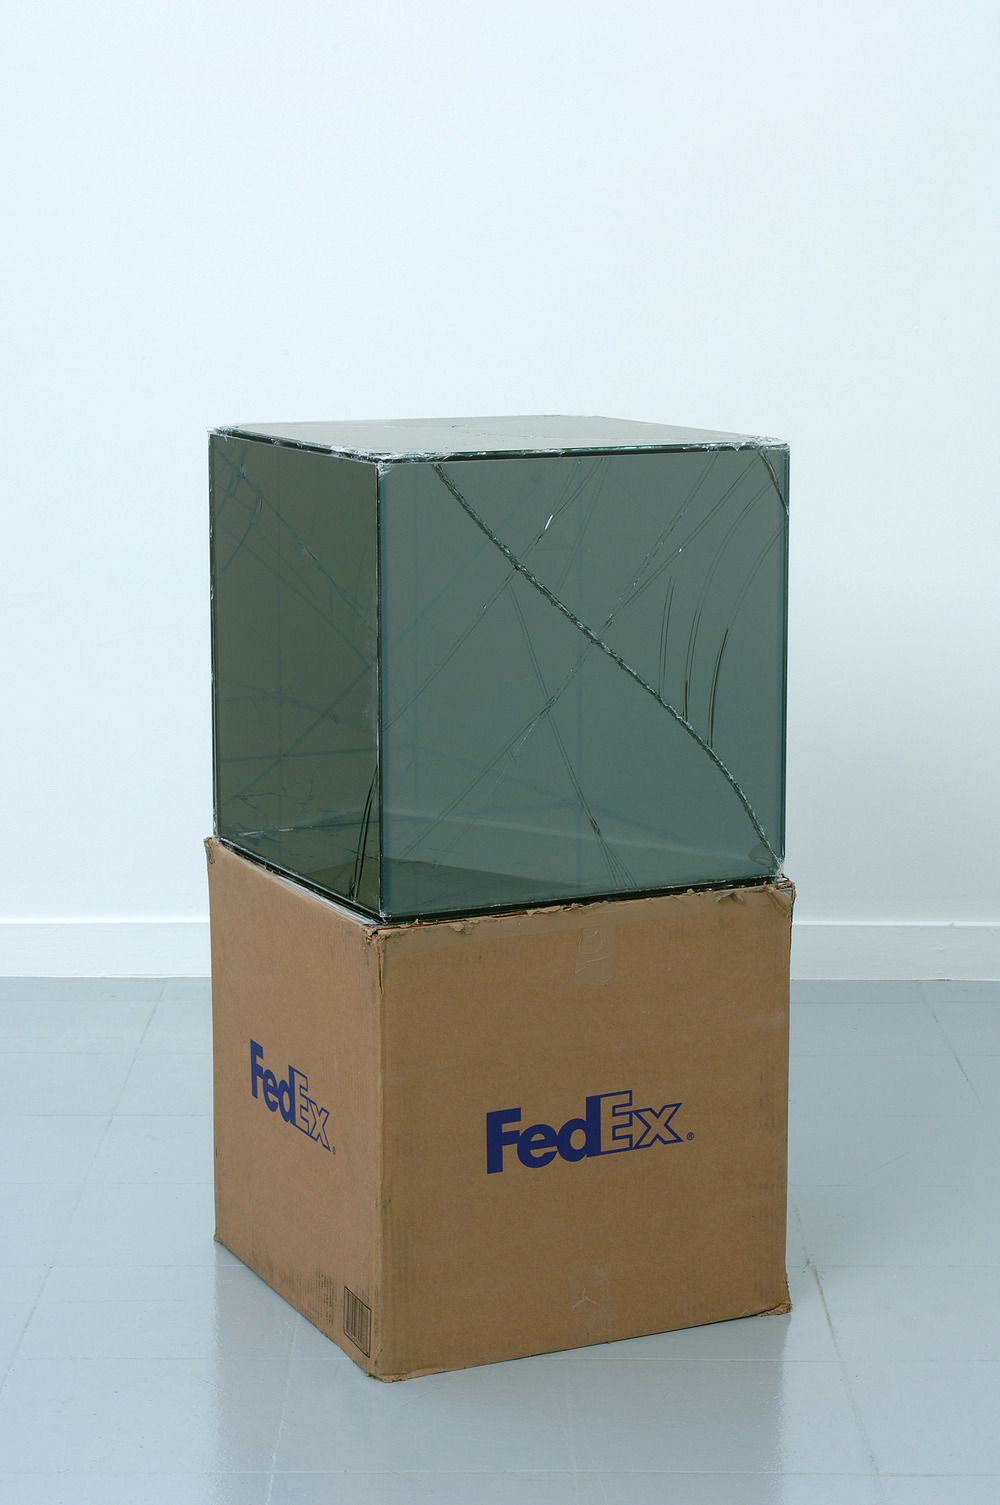 FedEx Large Kraft Box 2005 FEDEX 330508 REV 10/05 SSCC, International Priority, Los Angeles–Brussels trk#865282057942, October 27–30, 2008    2008–   Laminated Mirropane, FedEx shipping box, accrued FedEx shipping and tracking labels, silicone, metal, and tape  20 x 20 x 20 inches   FedEx Glass Works, 2007–